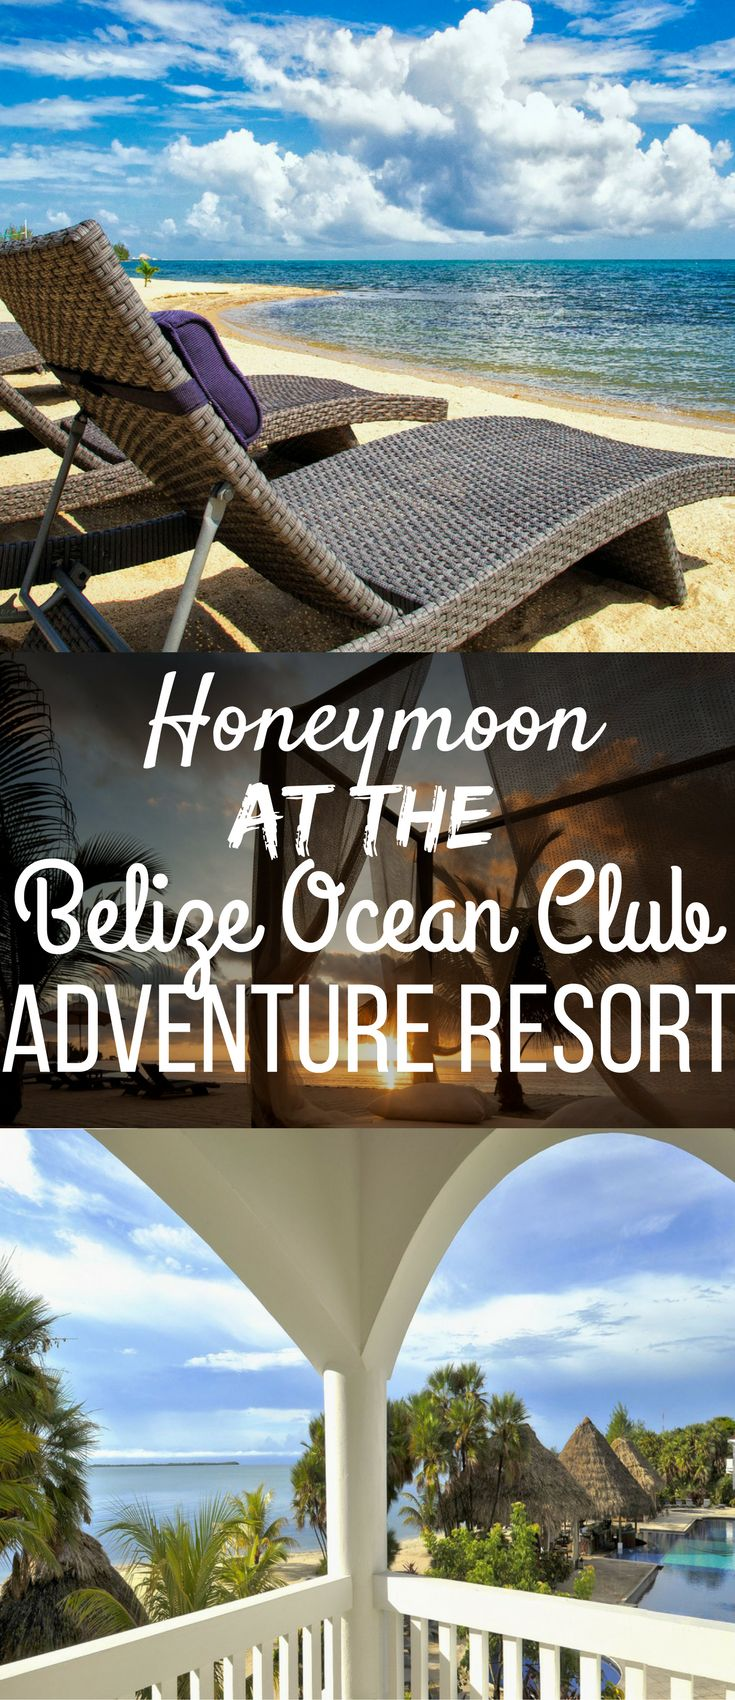 Thinking of a 5 star dive resort in Belize for your honeymoon? Then the Belize Ocean Club Adventure Resort is the perfect one for those who love to relax and unwind but also get into adventure! Check out the 20+ activities you can do at this resort.